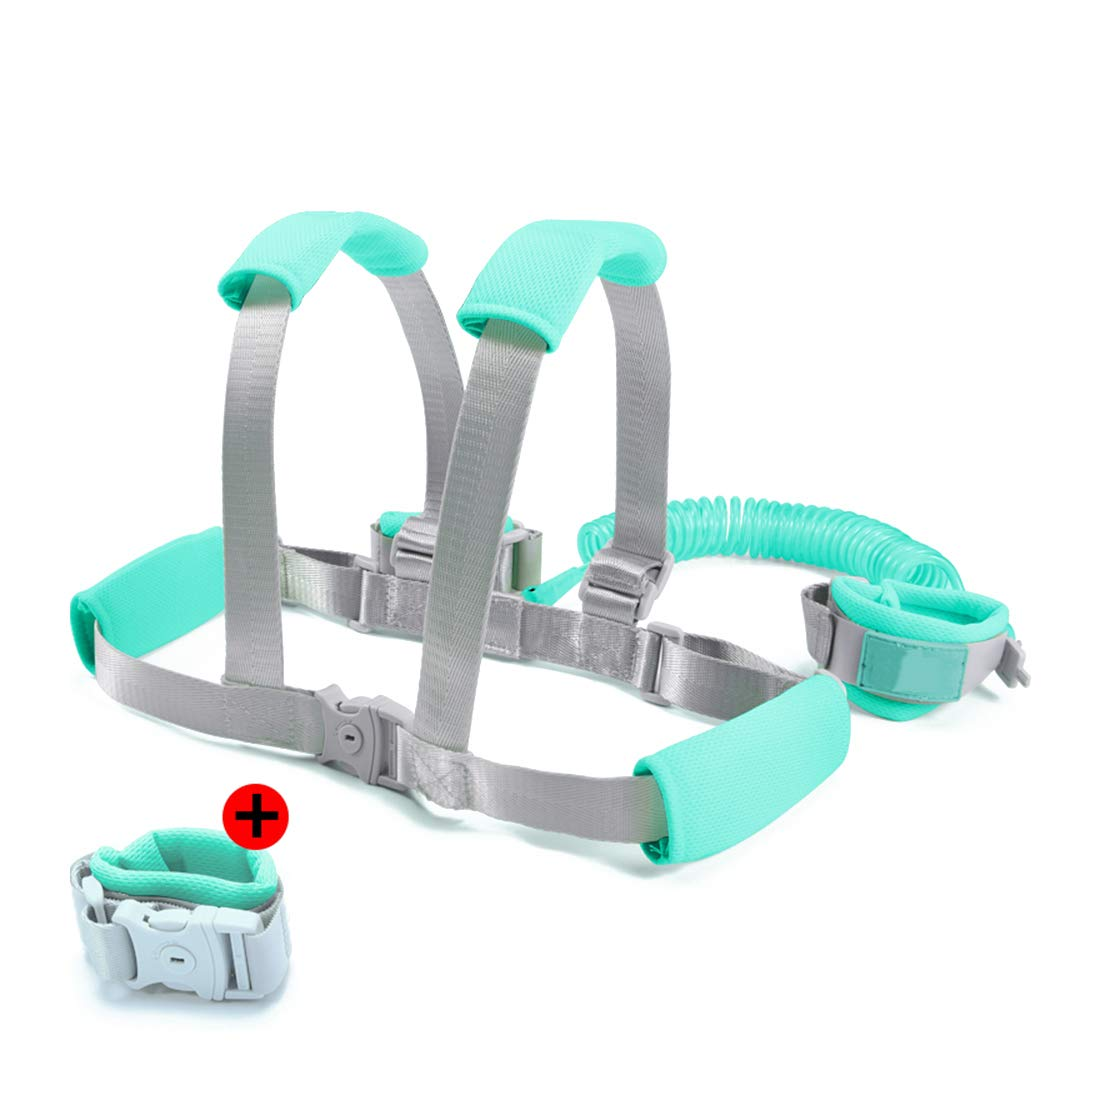 Toddler Leash- Baby Harness and Reins Anti Lost Wrist Link, Child Leash with Breathable Wristbands and Cushion(4.9ft/8.2ft) Toddler Harness Safety Leashes,Green,2.5m